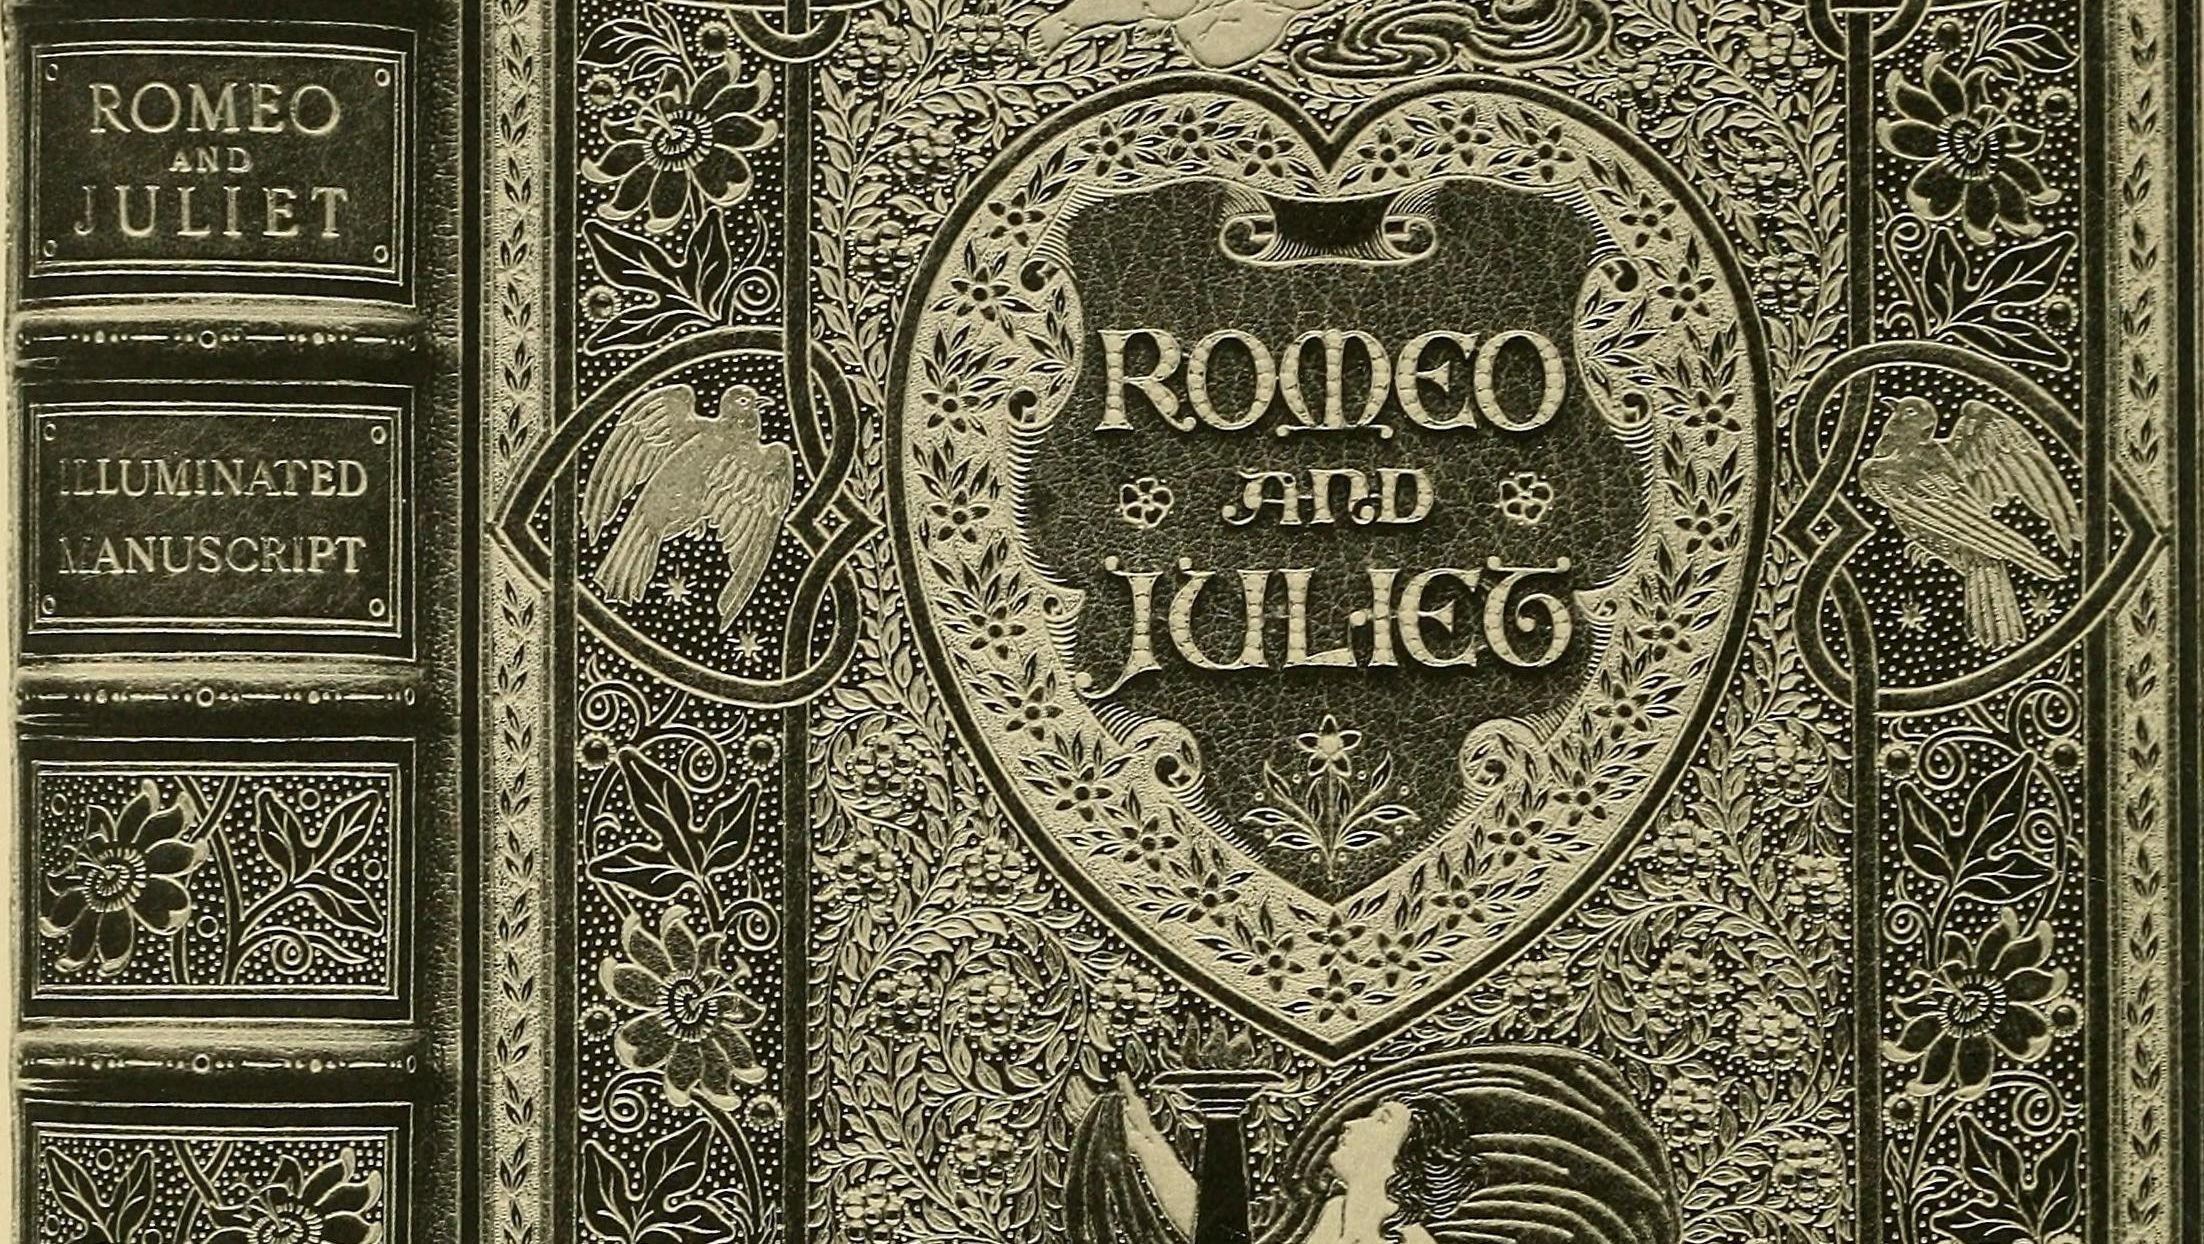 12 Facts About William Shakespeare's 'Romeo and Juliet'